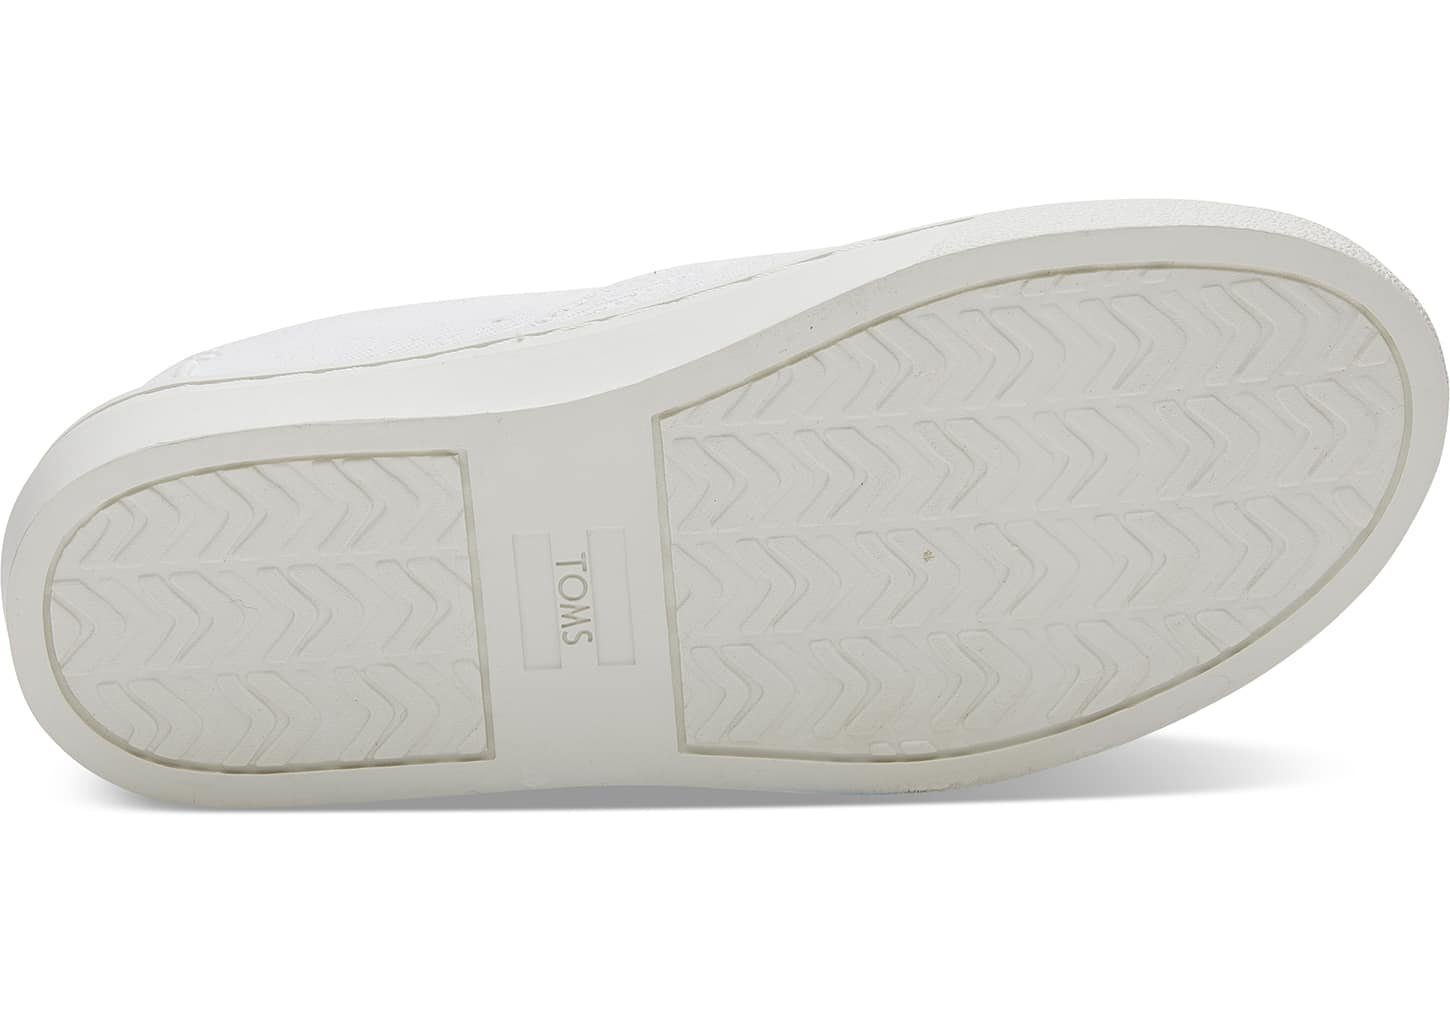 TOMS Youth Luca Slip Ons White Denim Love 10011482 Youth Size 5.5 by TOMS Kids (Image #4)